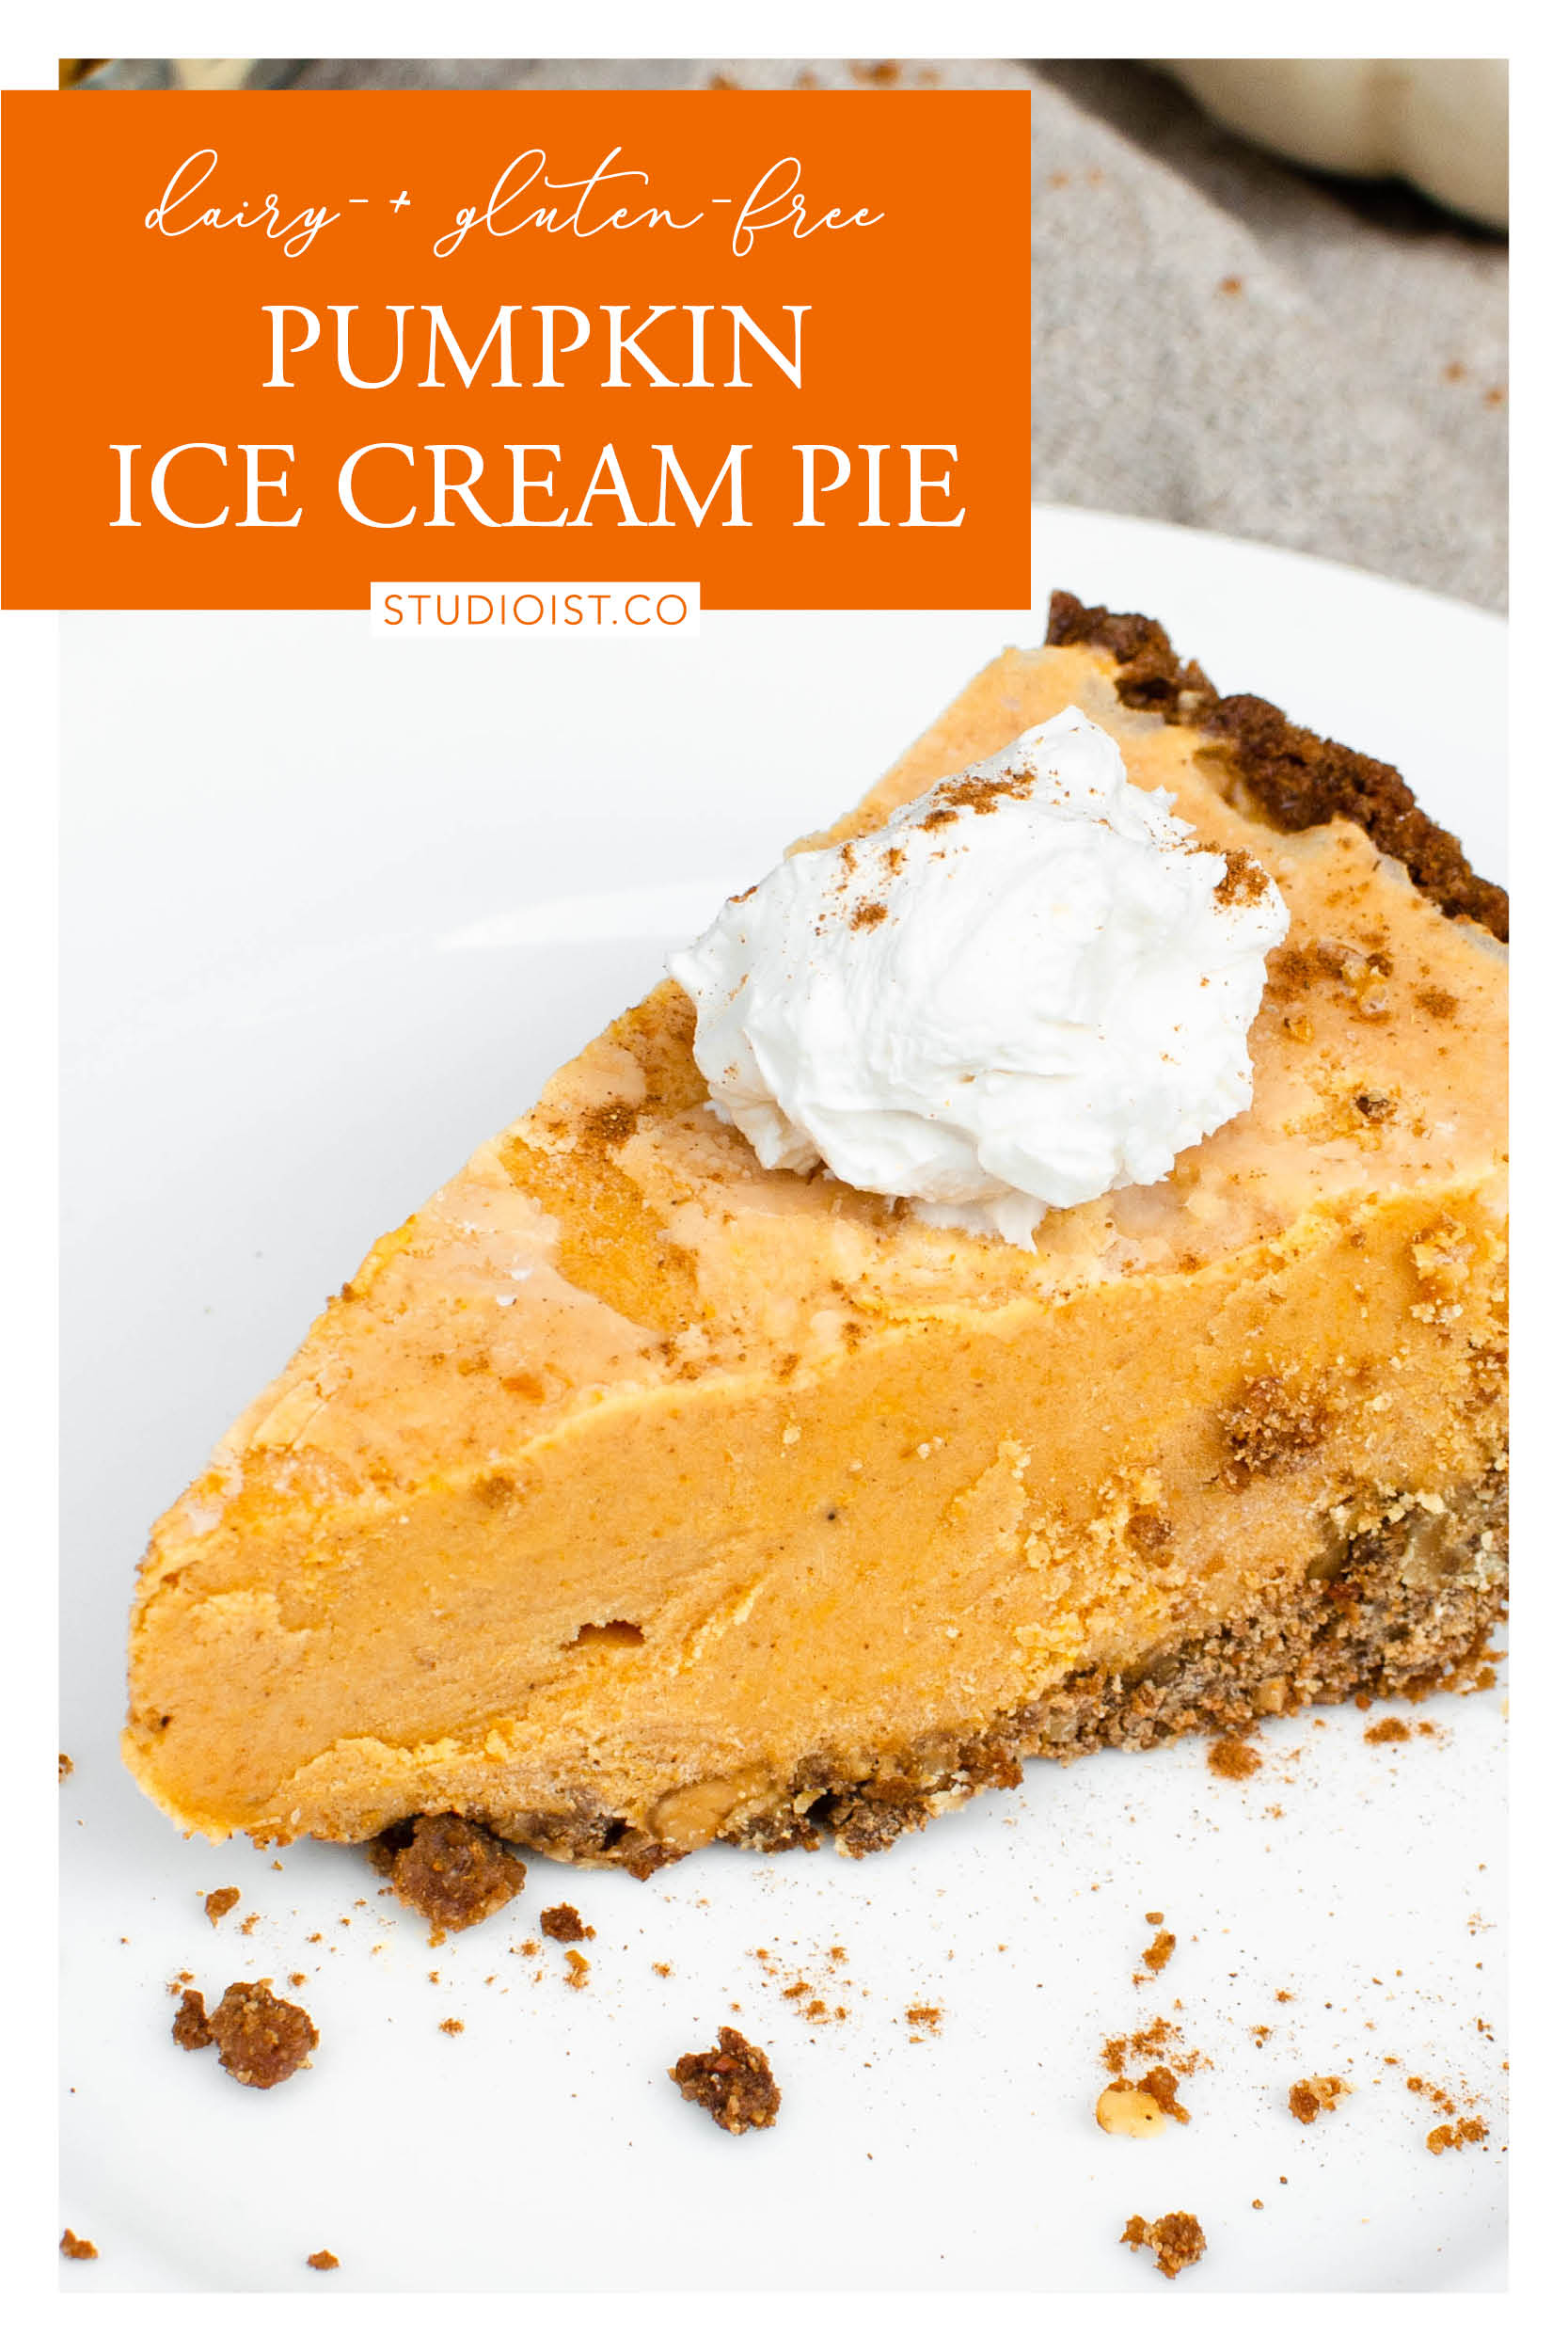 Studioist_Pinterest Design_Pumpkin Ice Cream Pie4.jpg